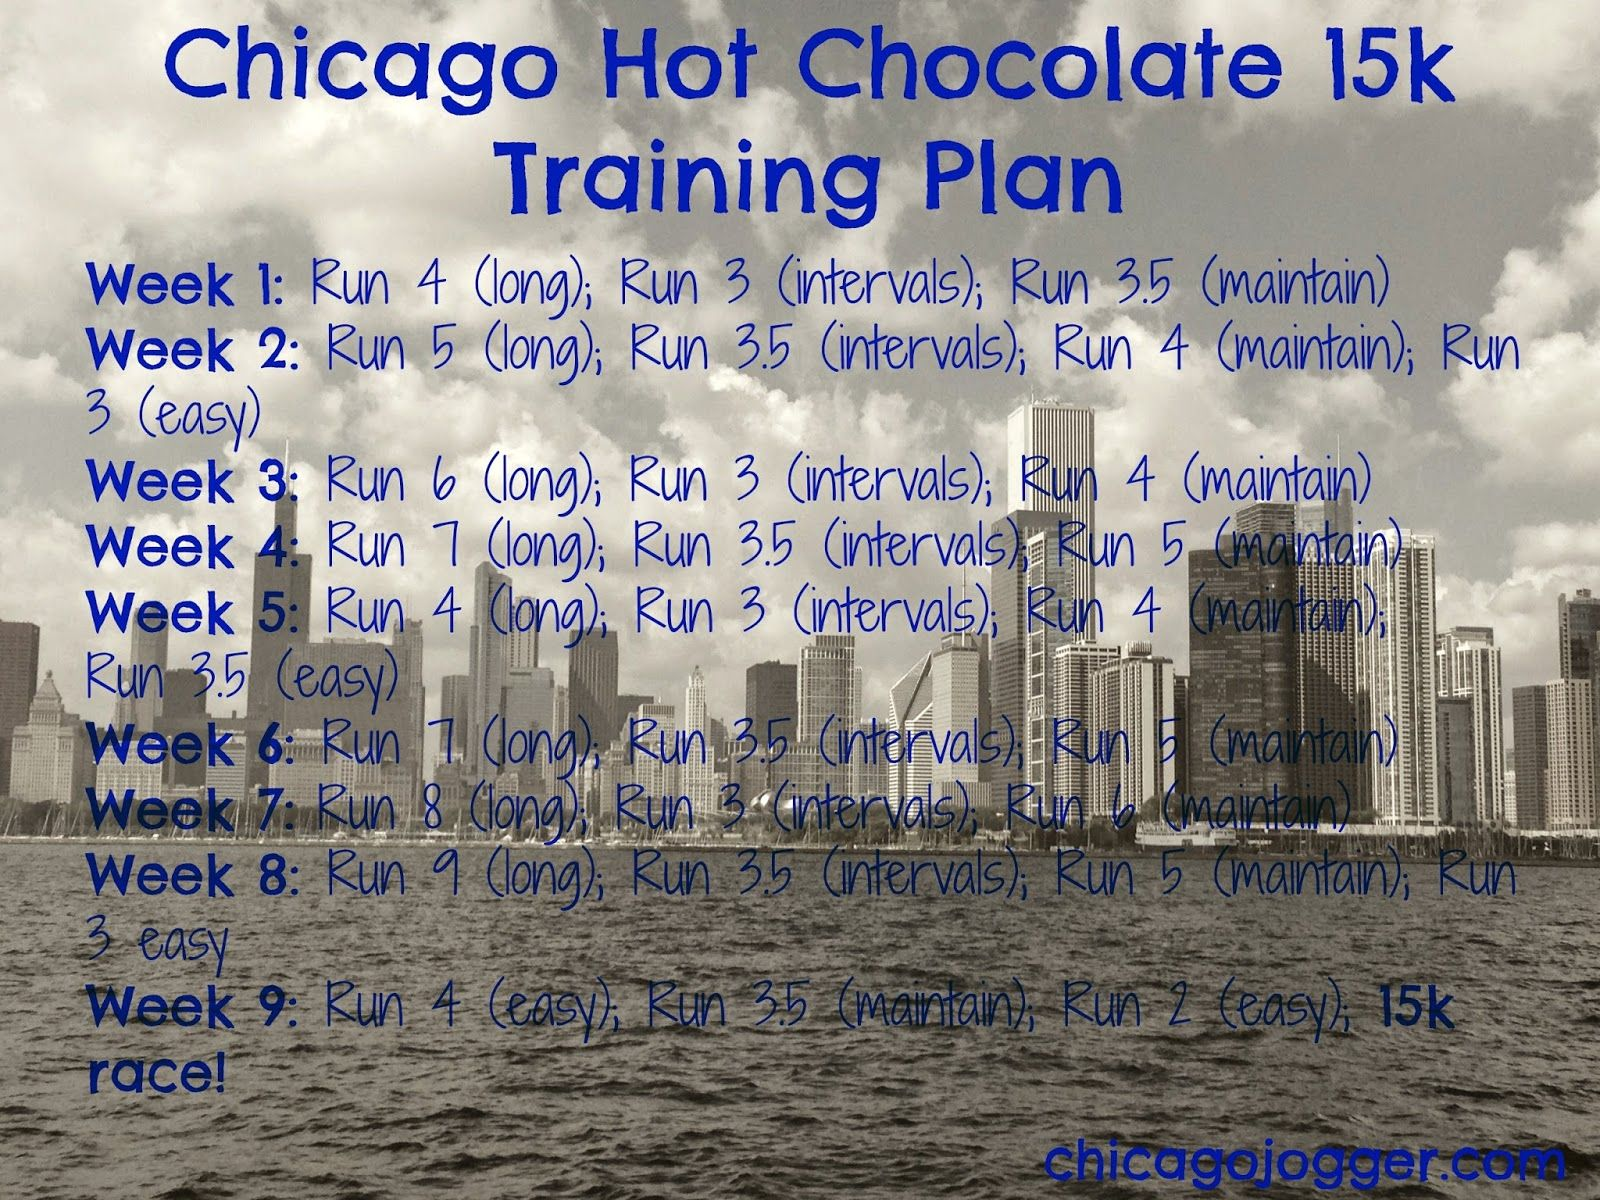 Hot Chocolate 15k Training Plan | chicagojogger.com | Frugal ...